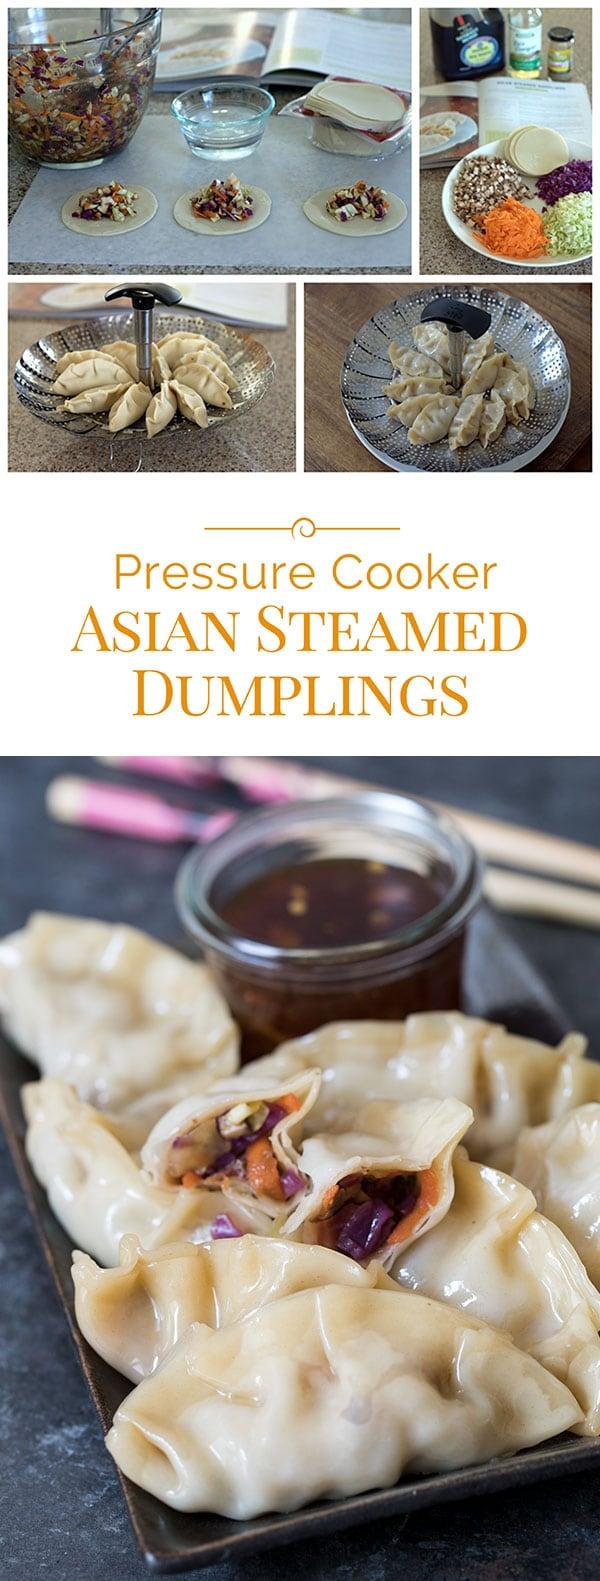 Steamed-Dumplings-Picture-Collage-Pressure-Cooking-Today